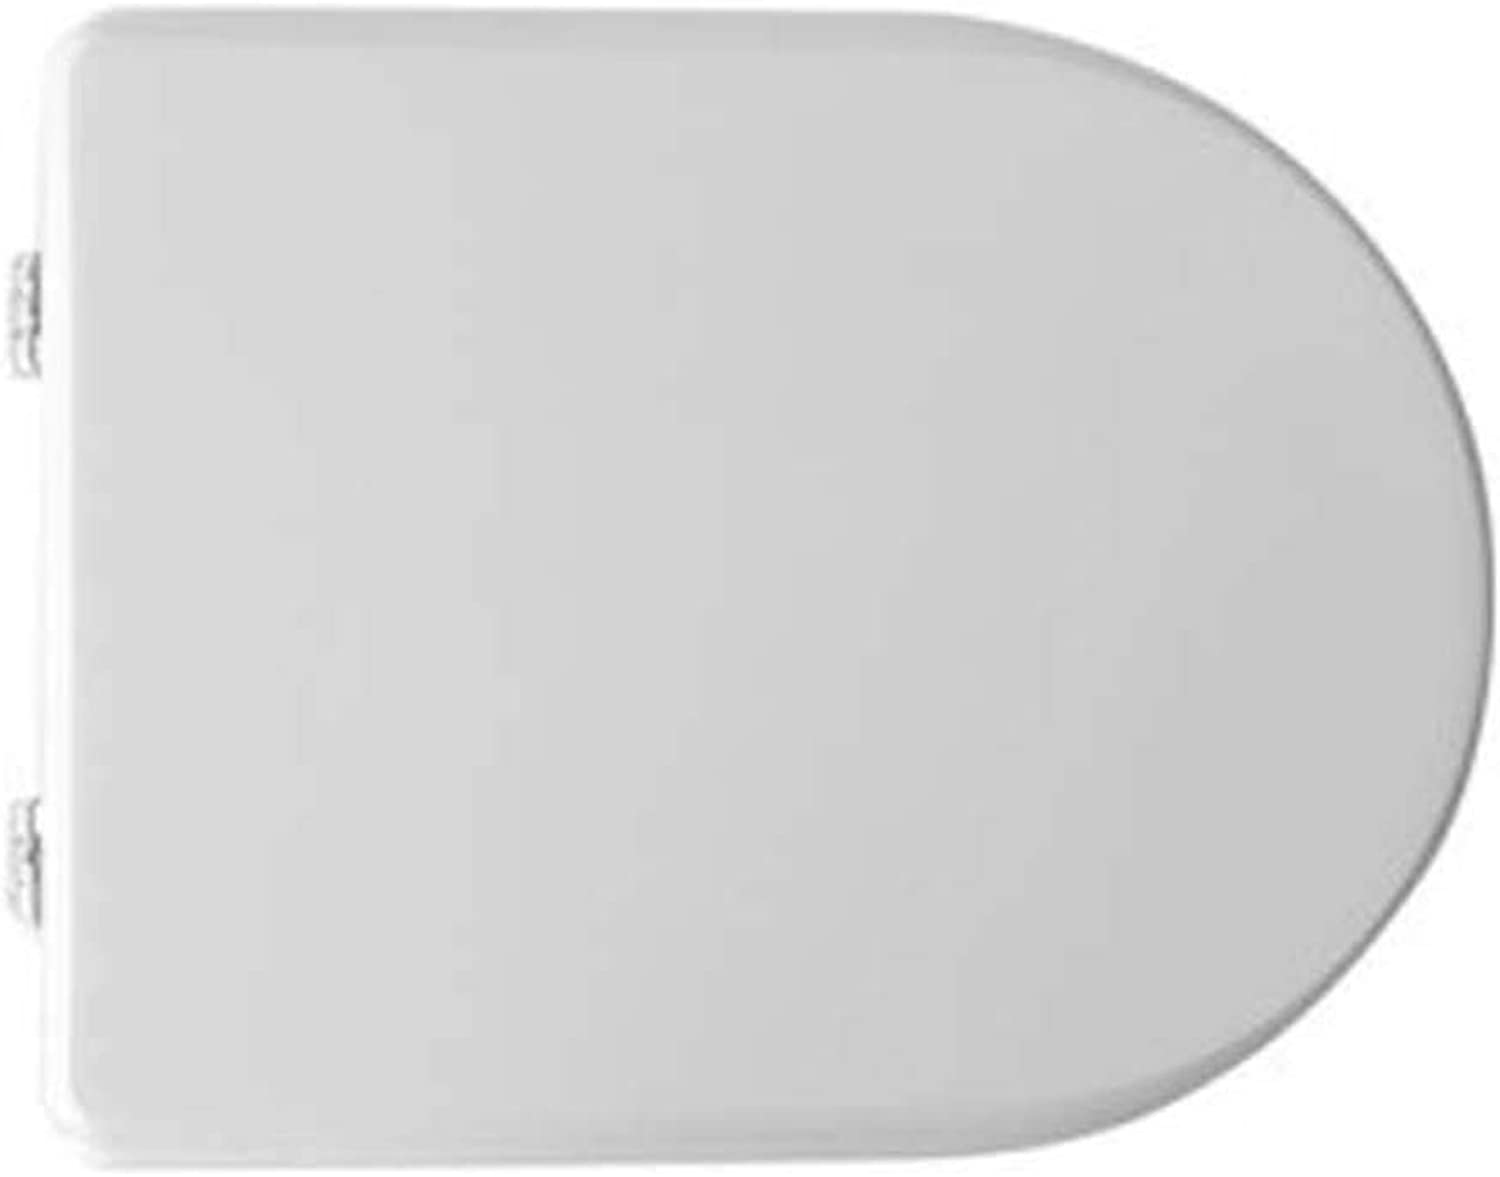 Toilet Seat for Roca Nexo Vase